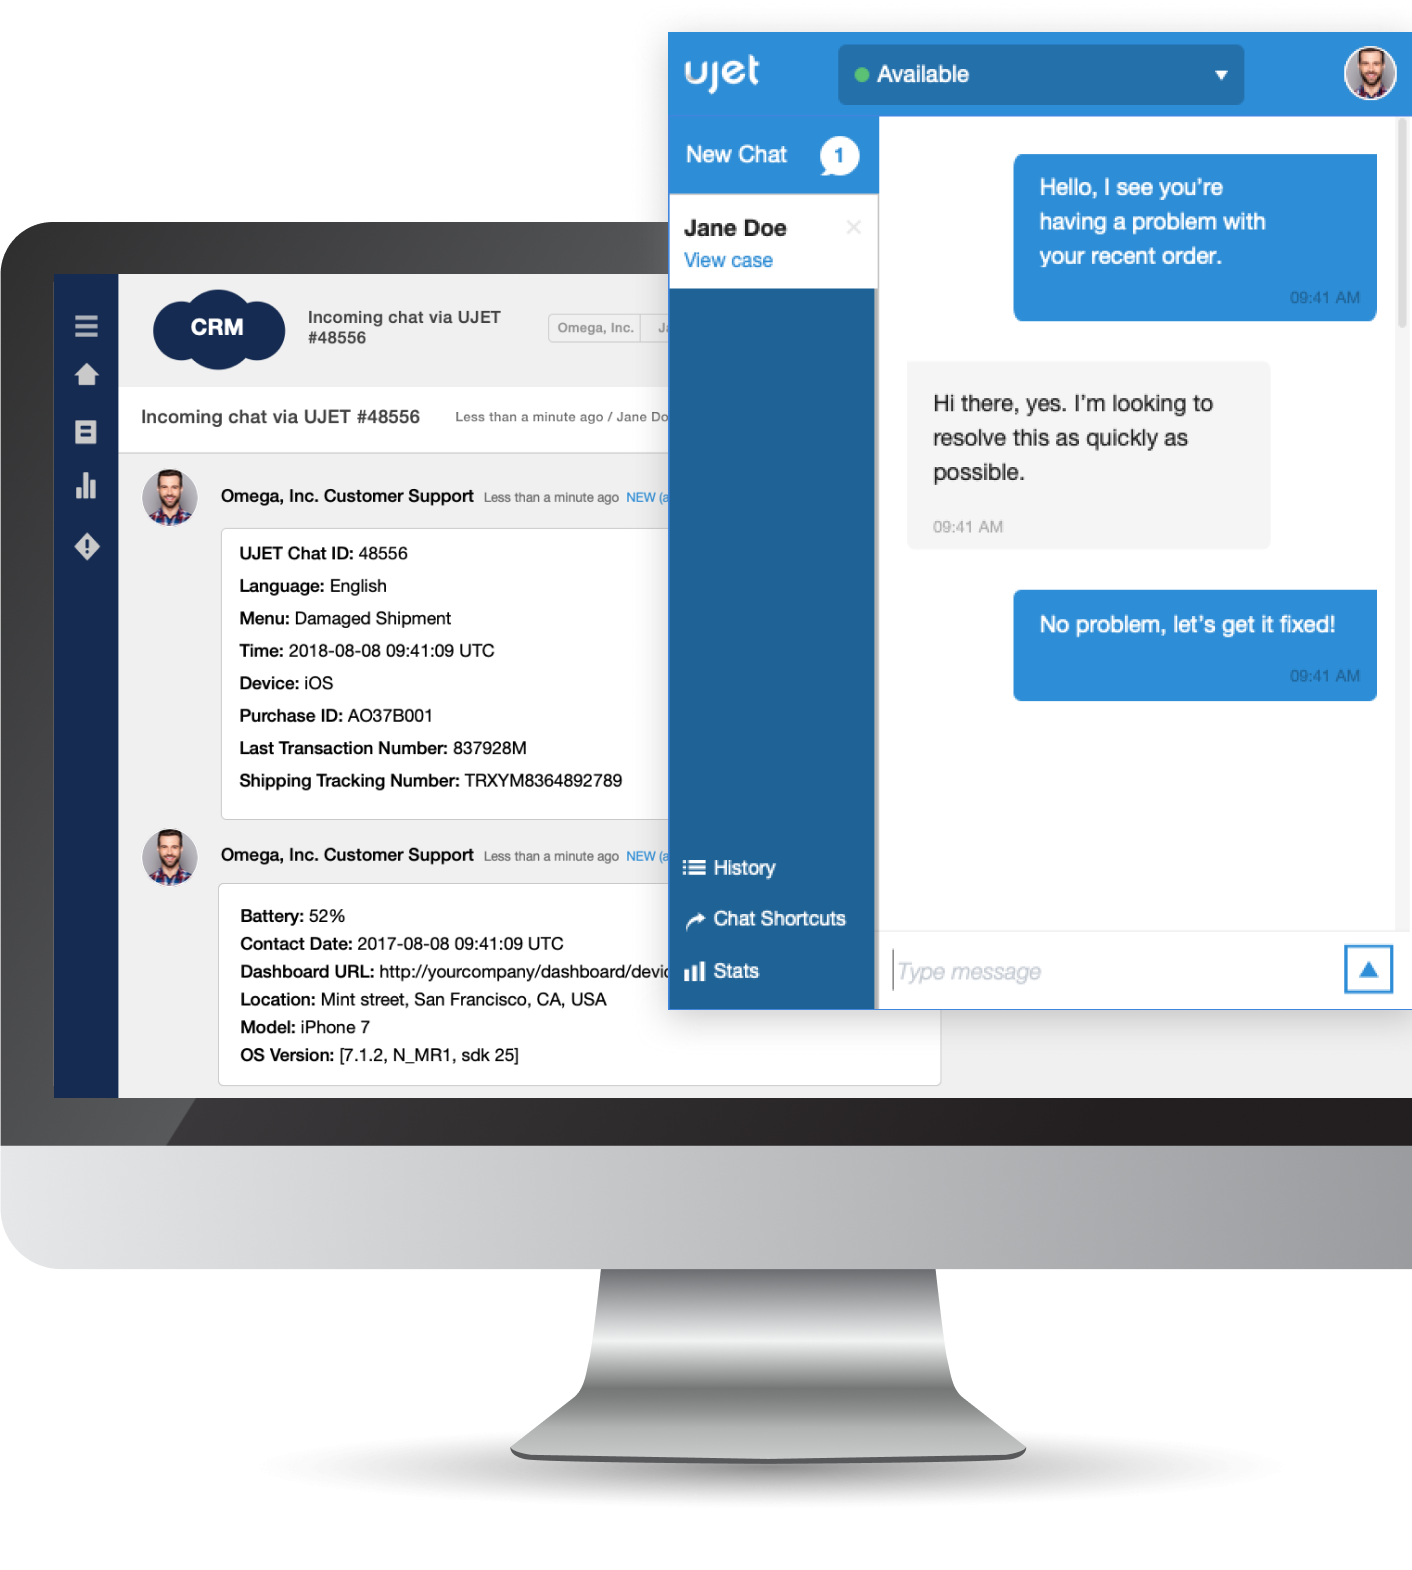 UJET Software - UJET agent's chat view